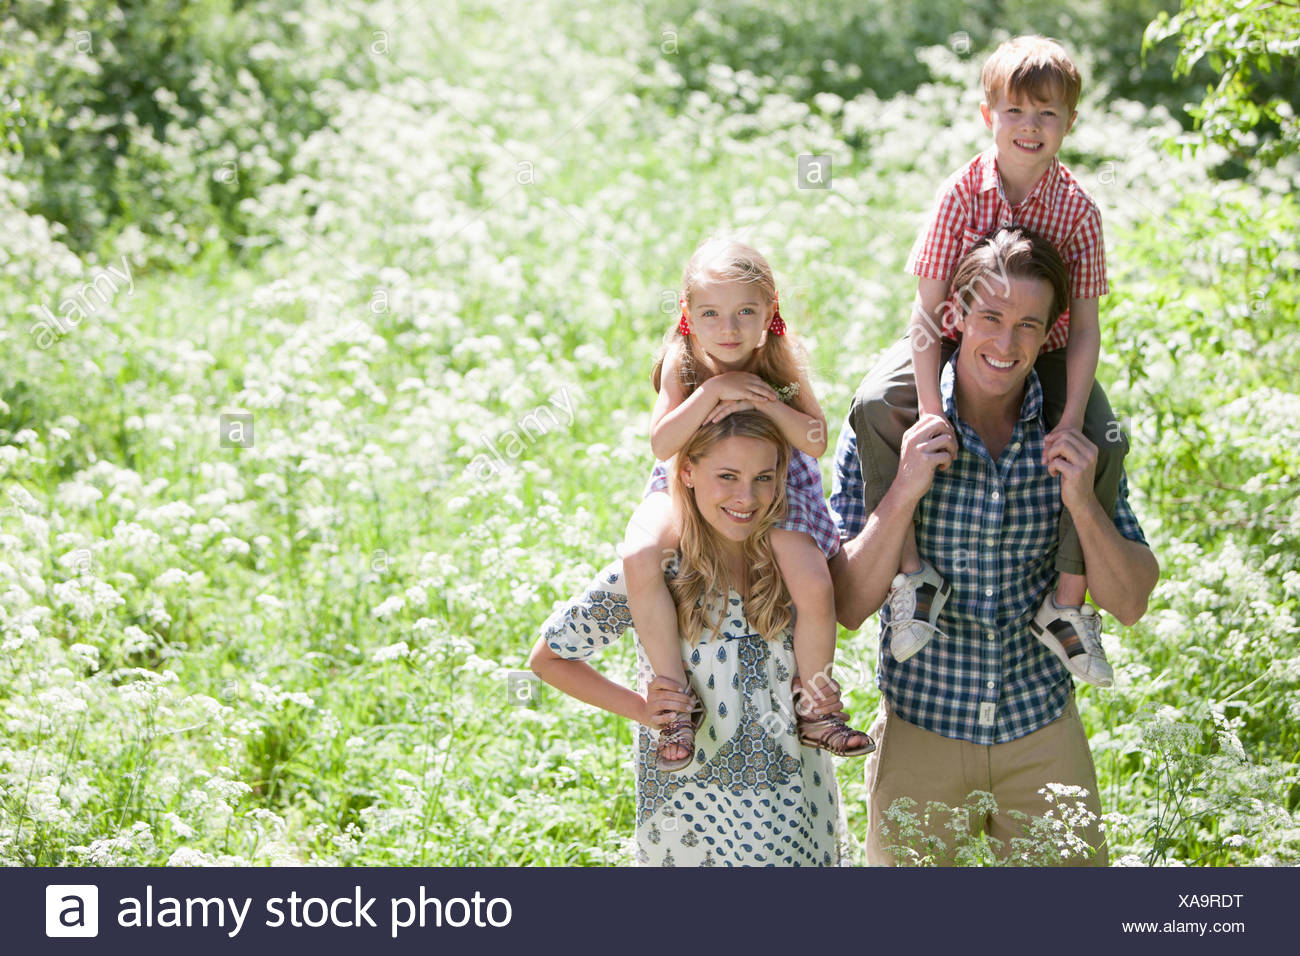 Parents holding children on shoulders in park Stock Photo